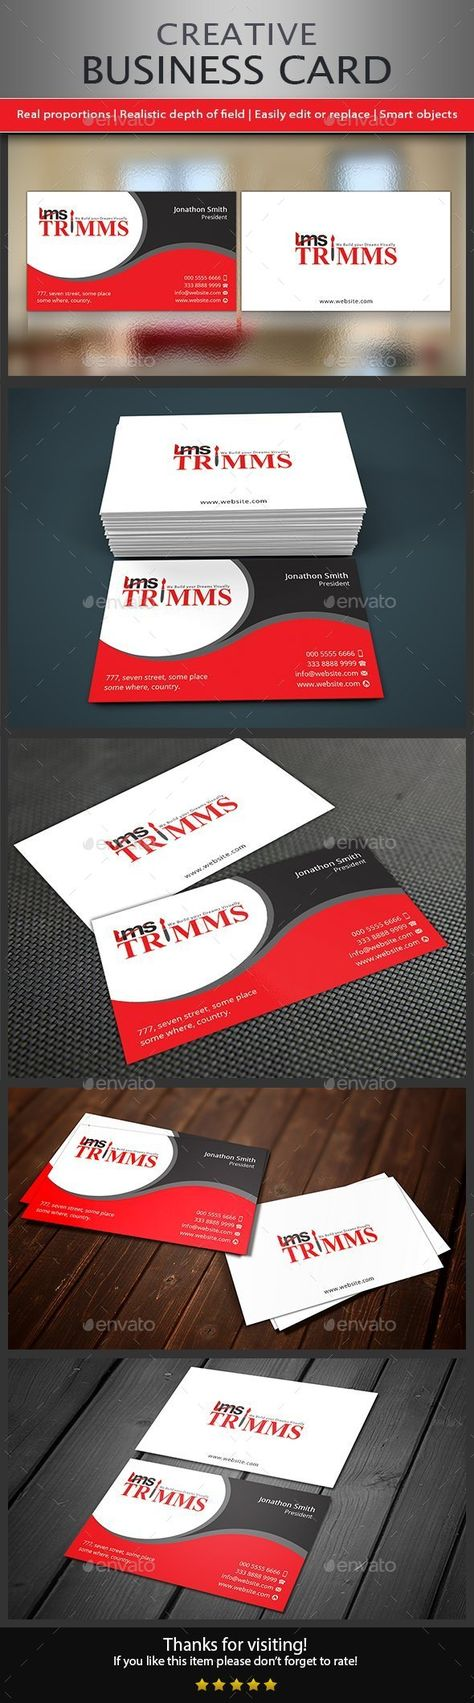 Creative Business Card | Business cards, Card templates and Simple ...